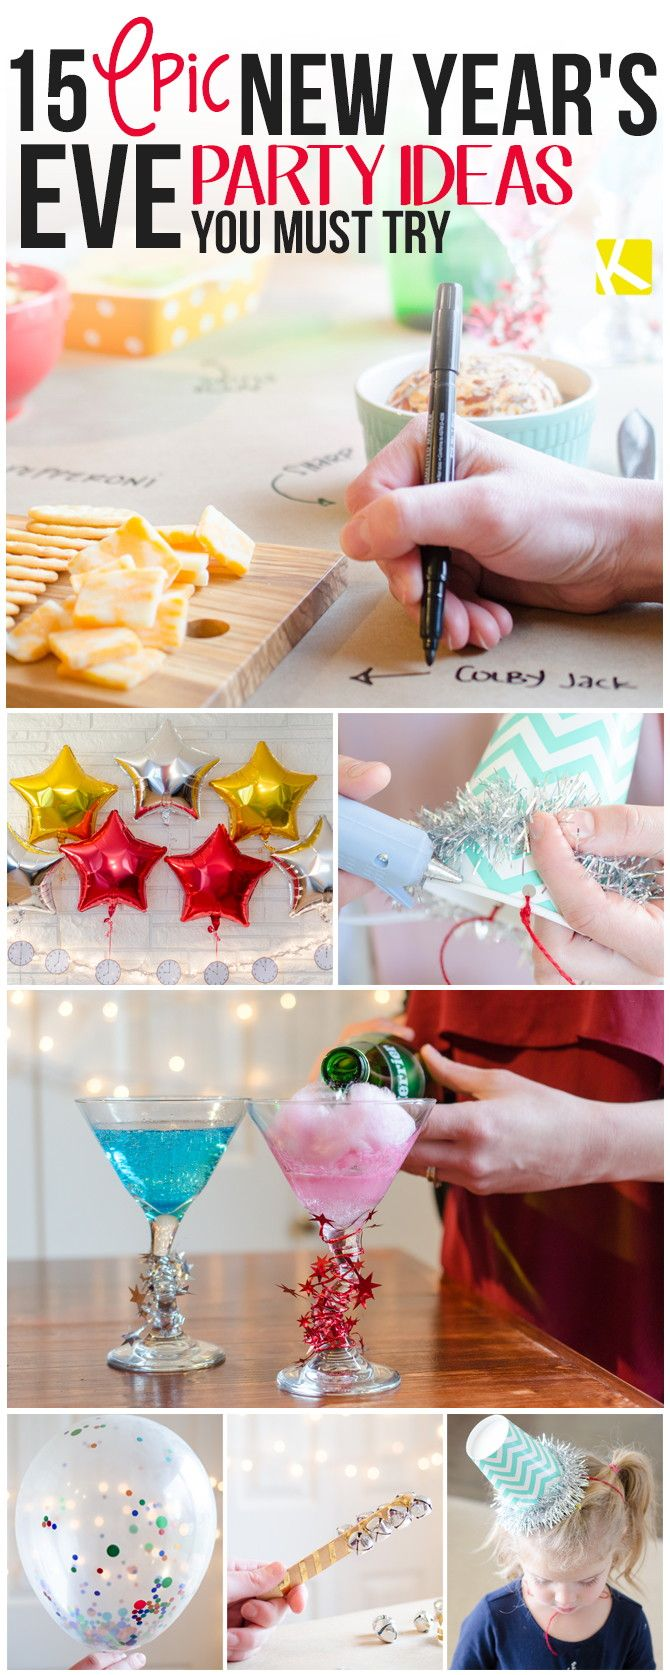 15 Epic New Year's Eve Party Ideas You Must Try